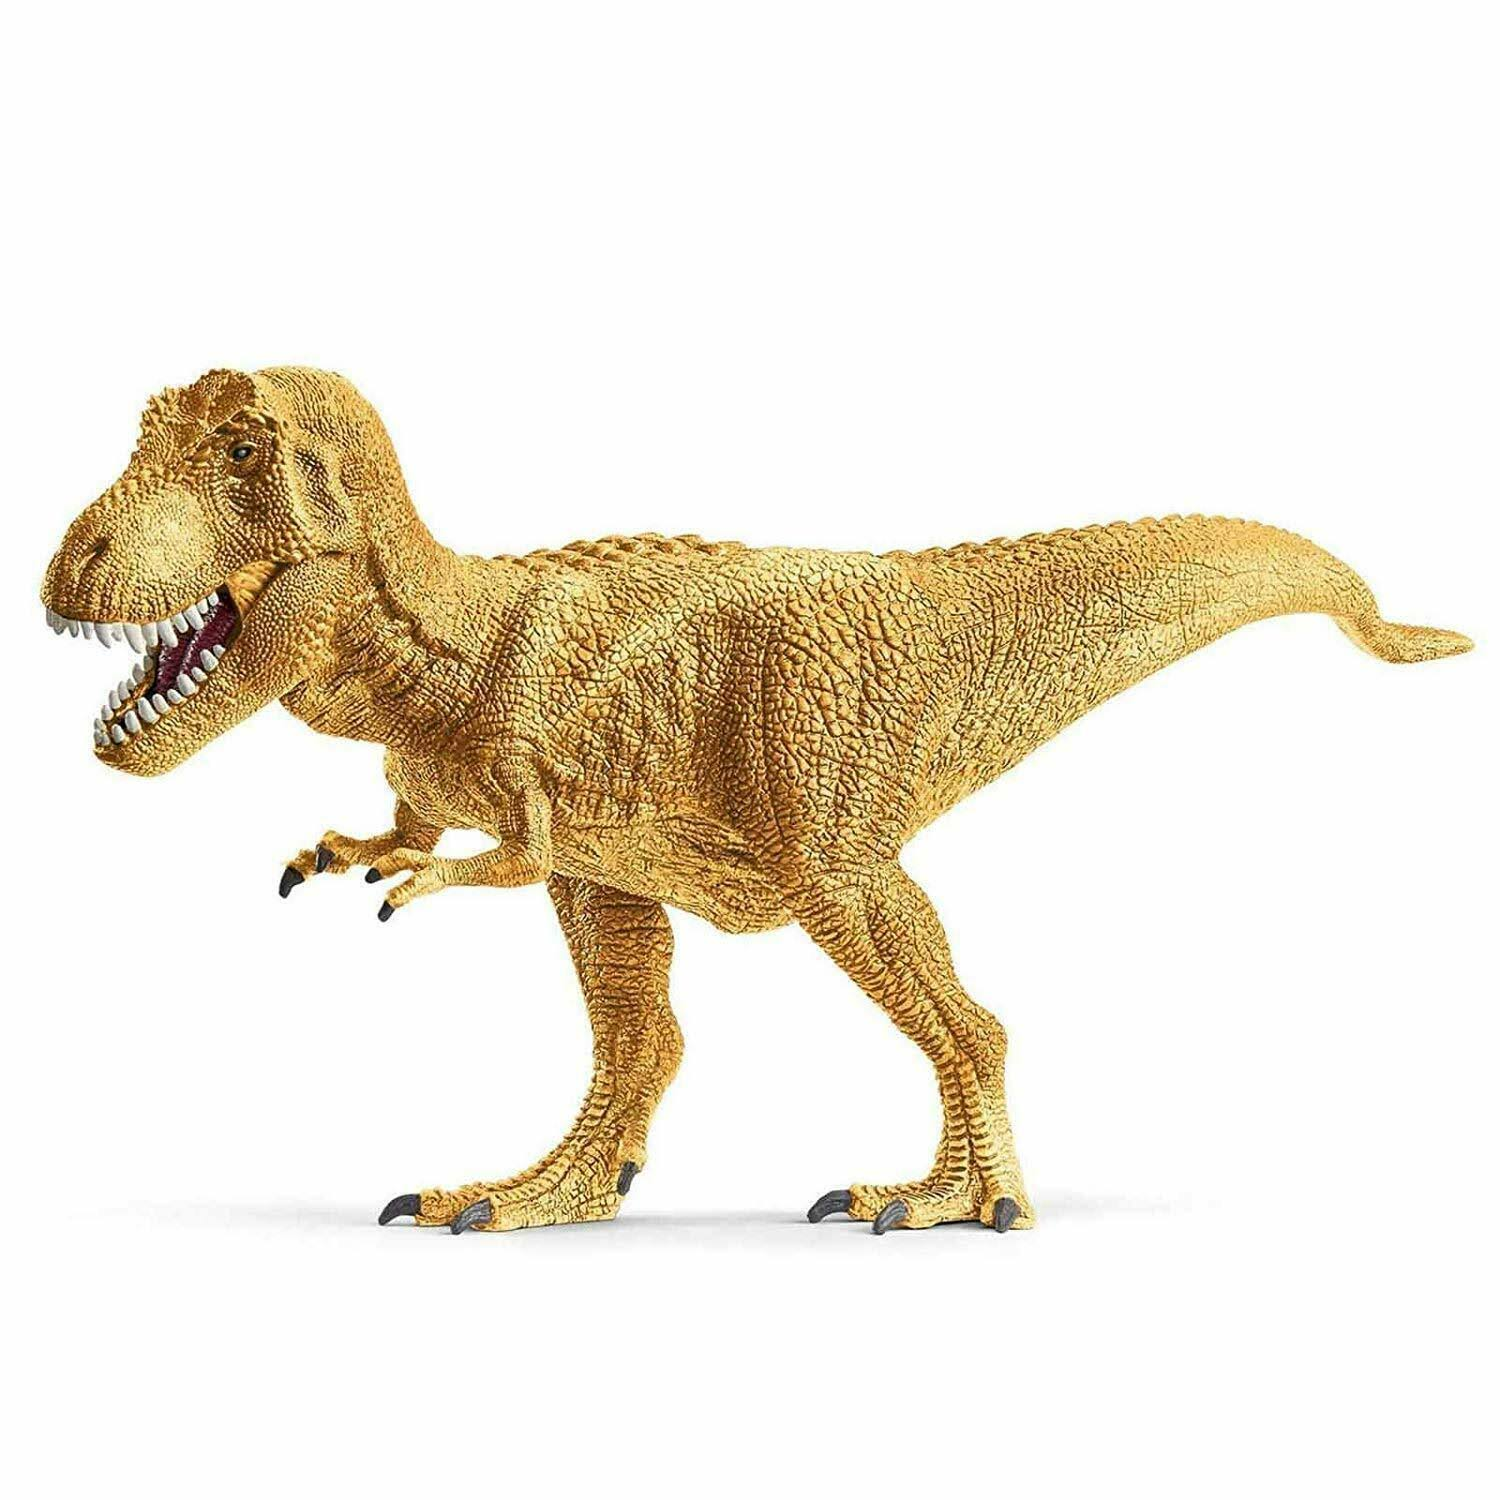 Schleich 72122 Golden T-Rex Action Figure